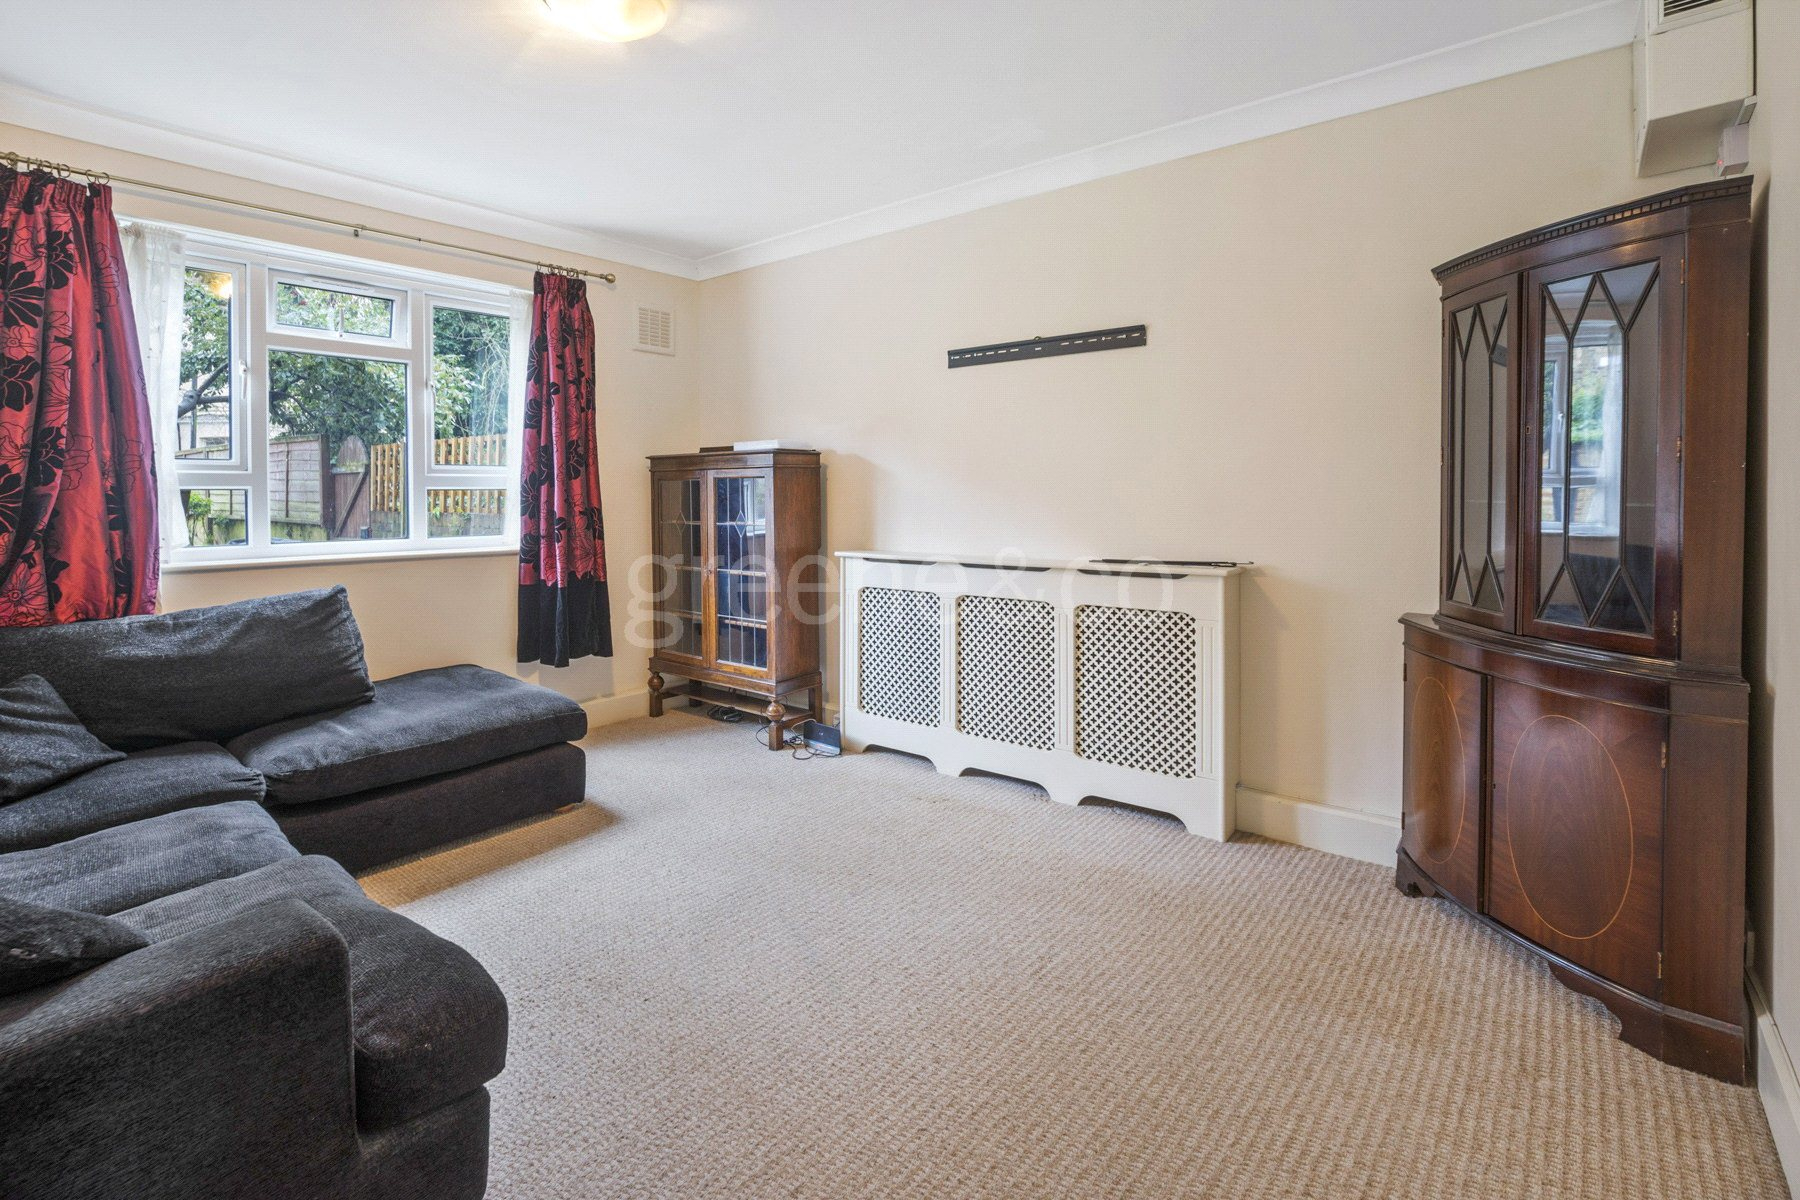 1 Bedroom Flat for sale in Leighton Grove, Kentish Town, London, NW5